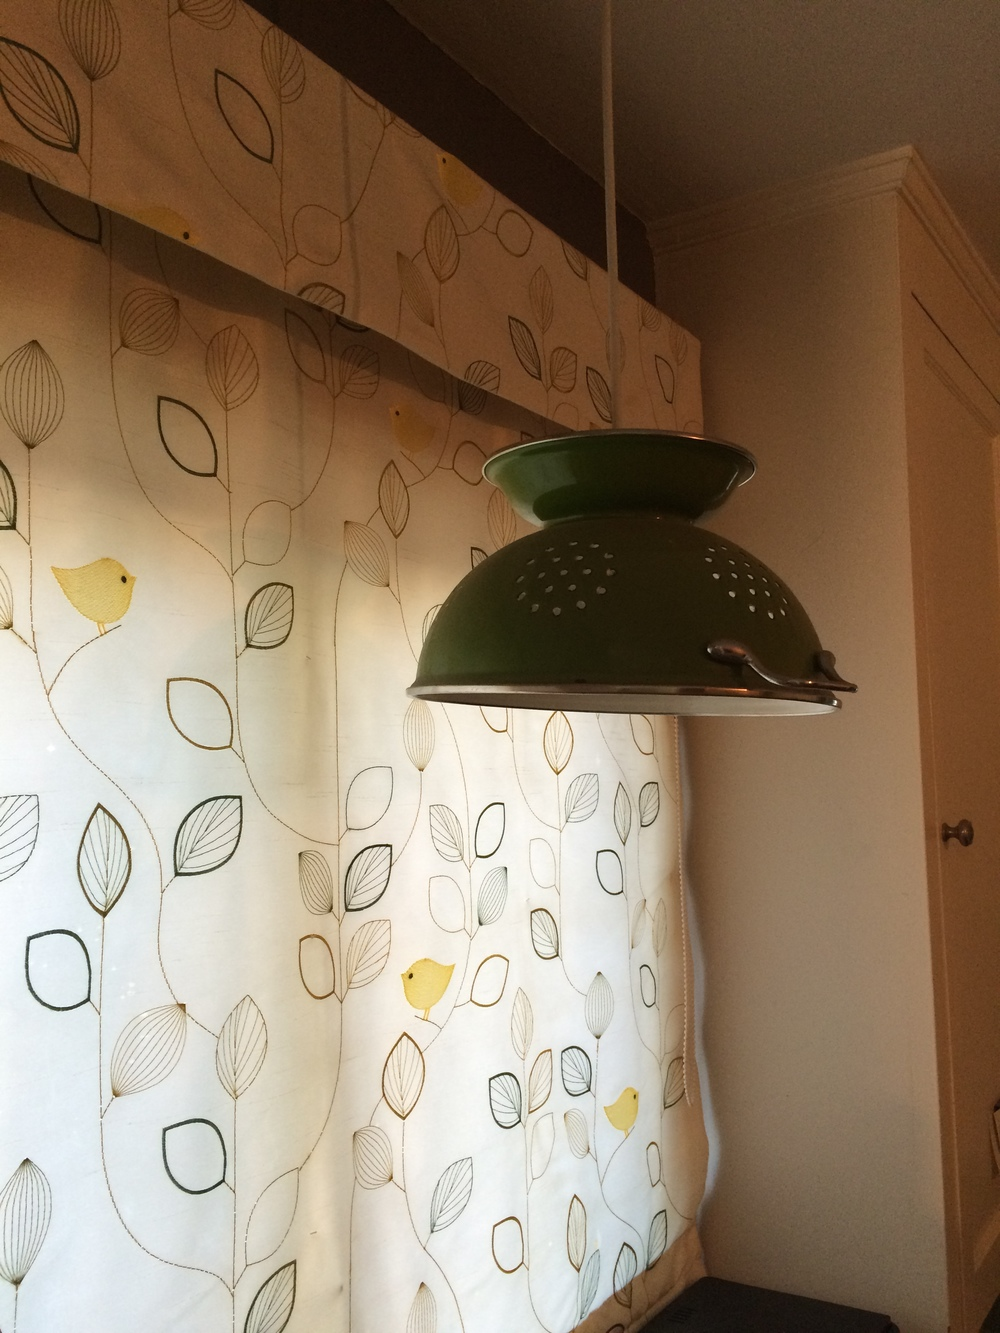 Kitchen Colander as a Light Fixture